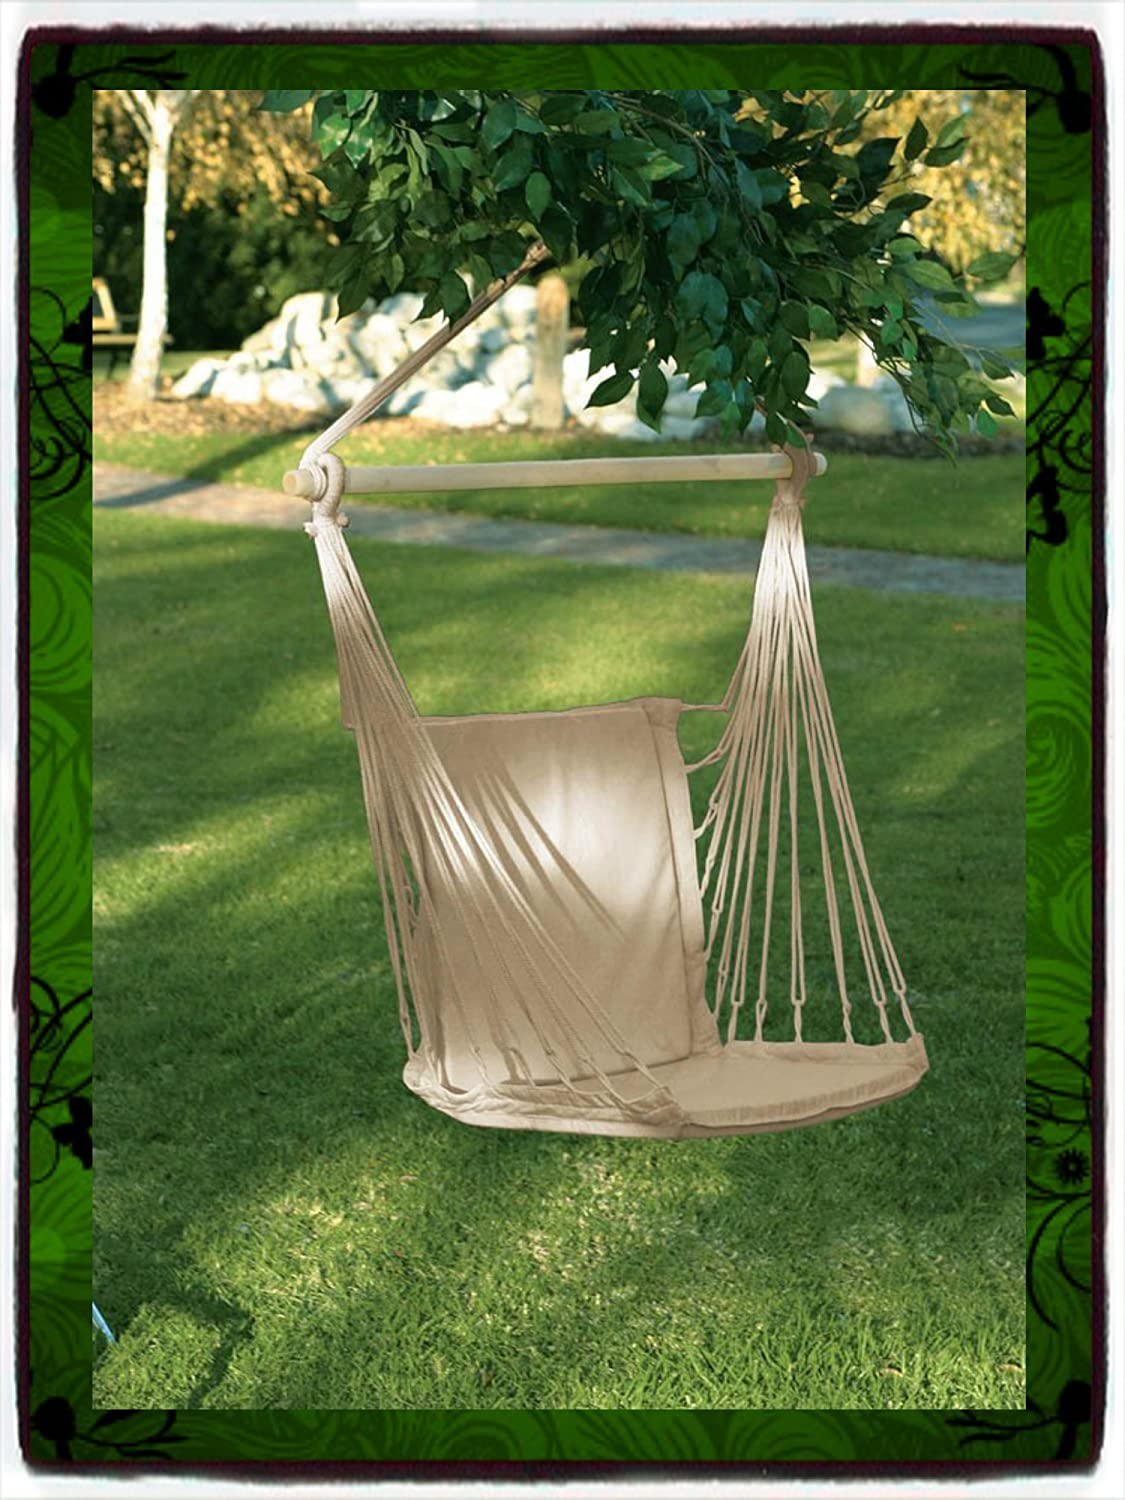 Deluxe Air Hammock Hanging Patio Tree Sky Swing Chair Outdoor Porch Lounge Furniture Padded Cotton Garden Seat Set Chairs Swings Swinging Solid Wood New Guarantee – – It Only Comes Along with Our Company s Ebook